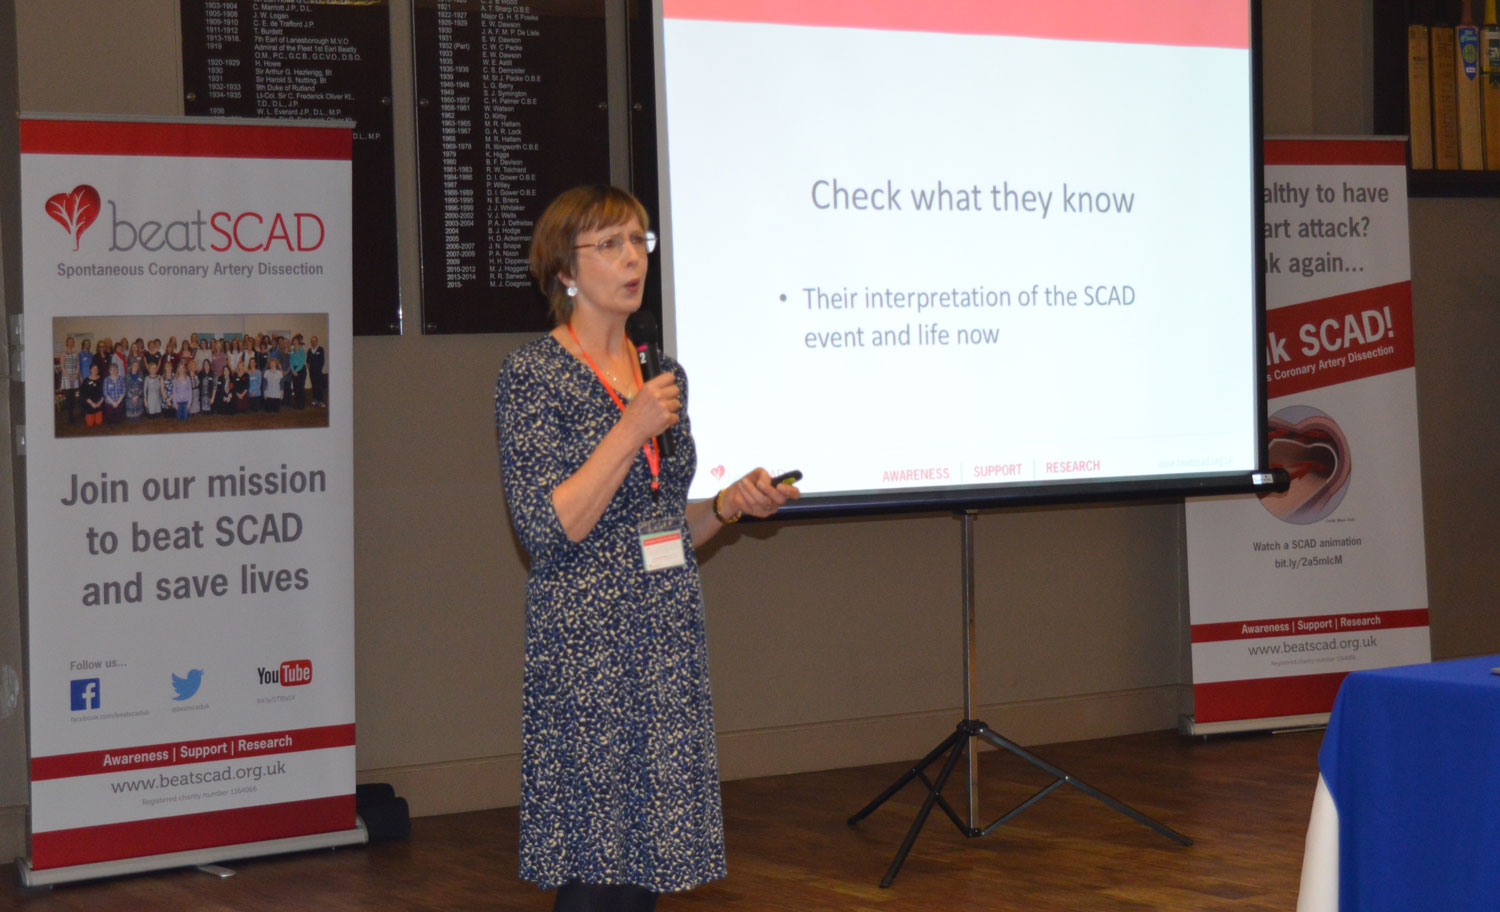 Catherine Beck talked about how to discuss SCAD with children